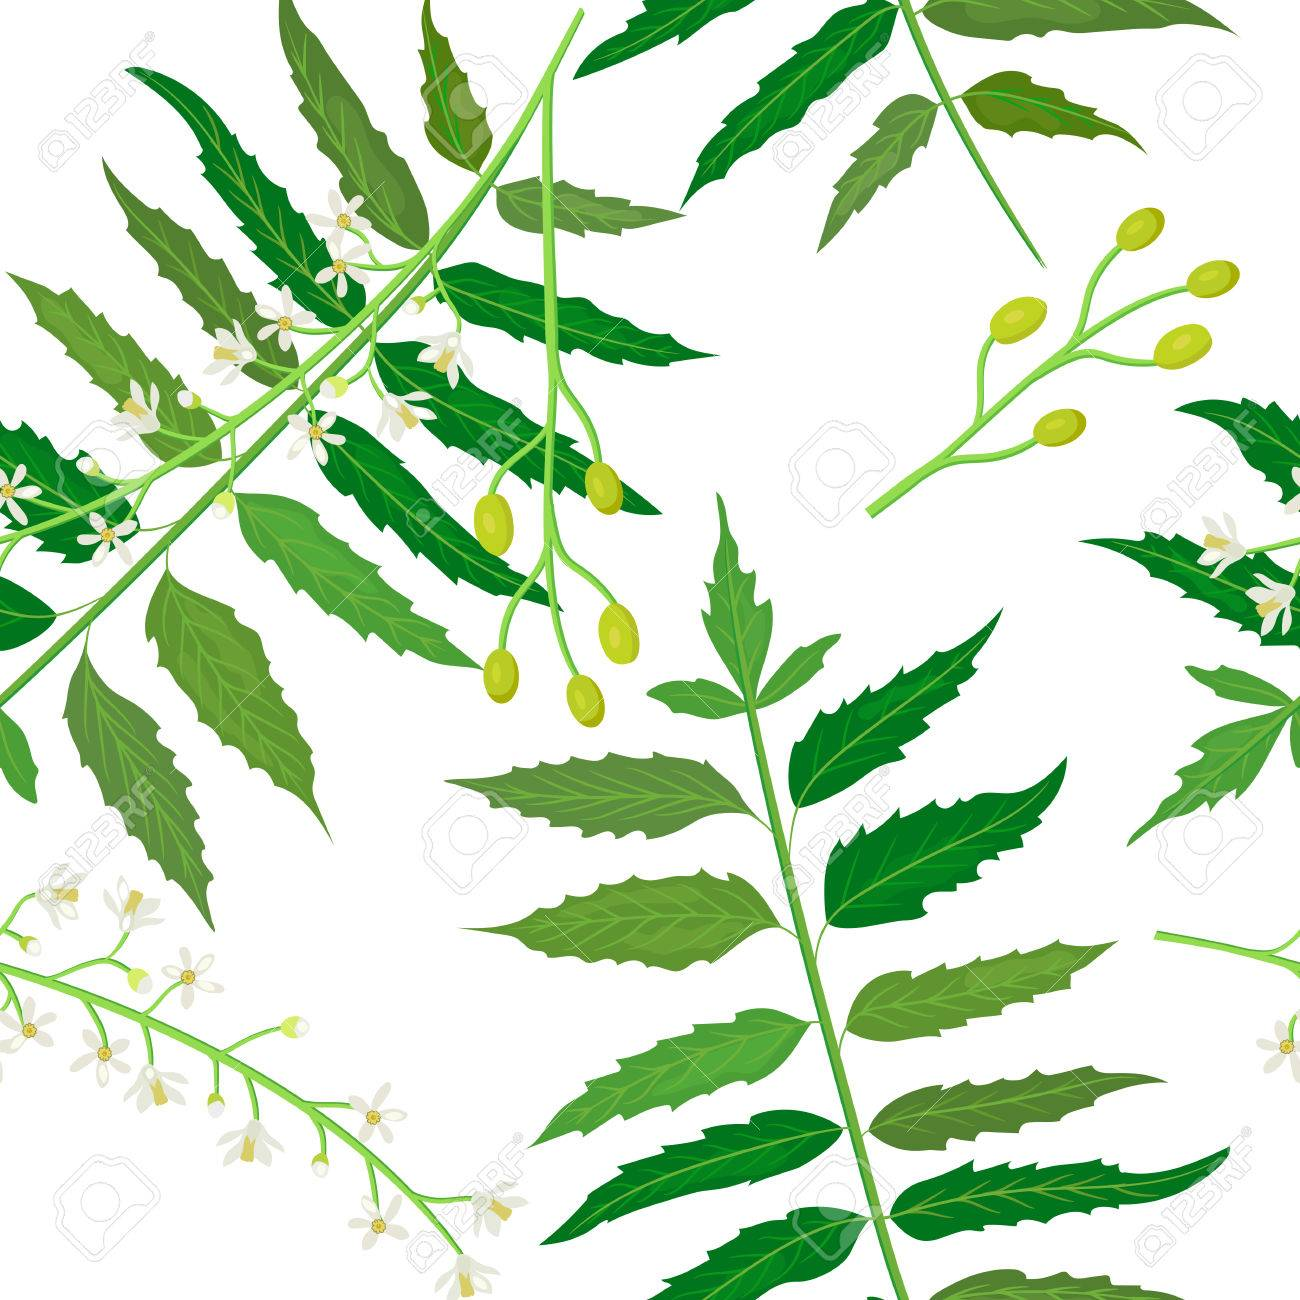 Neem Or Nimtree Seamless Pattern Vector Royalty Free Cliparts